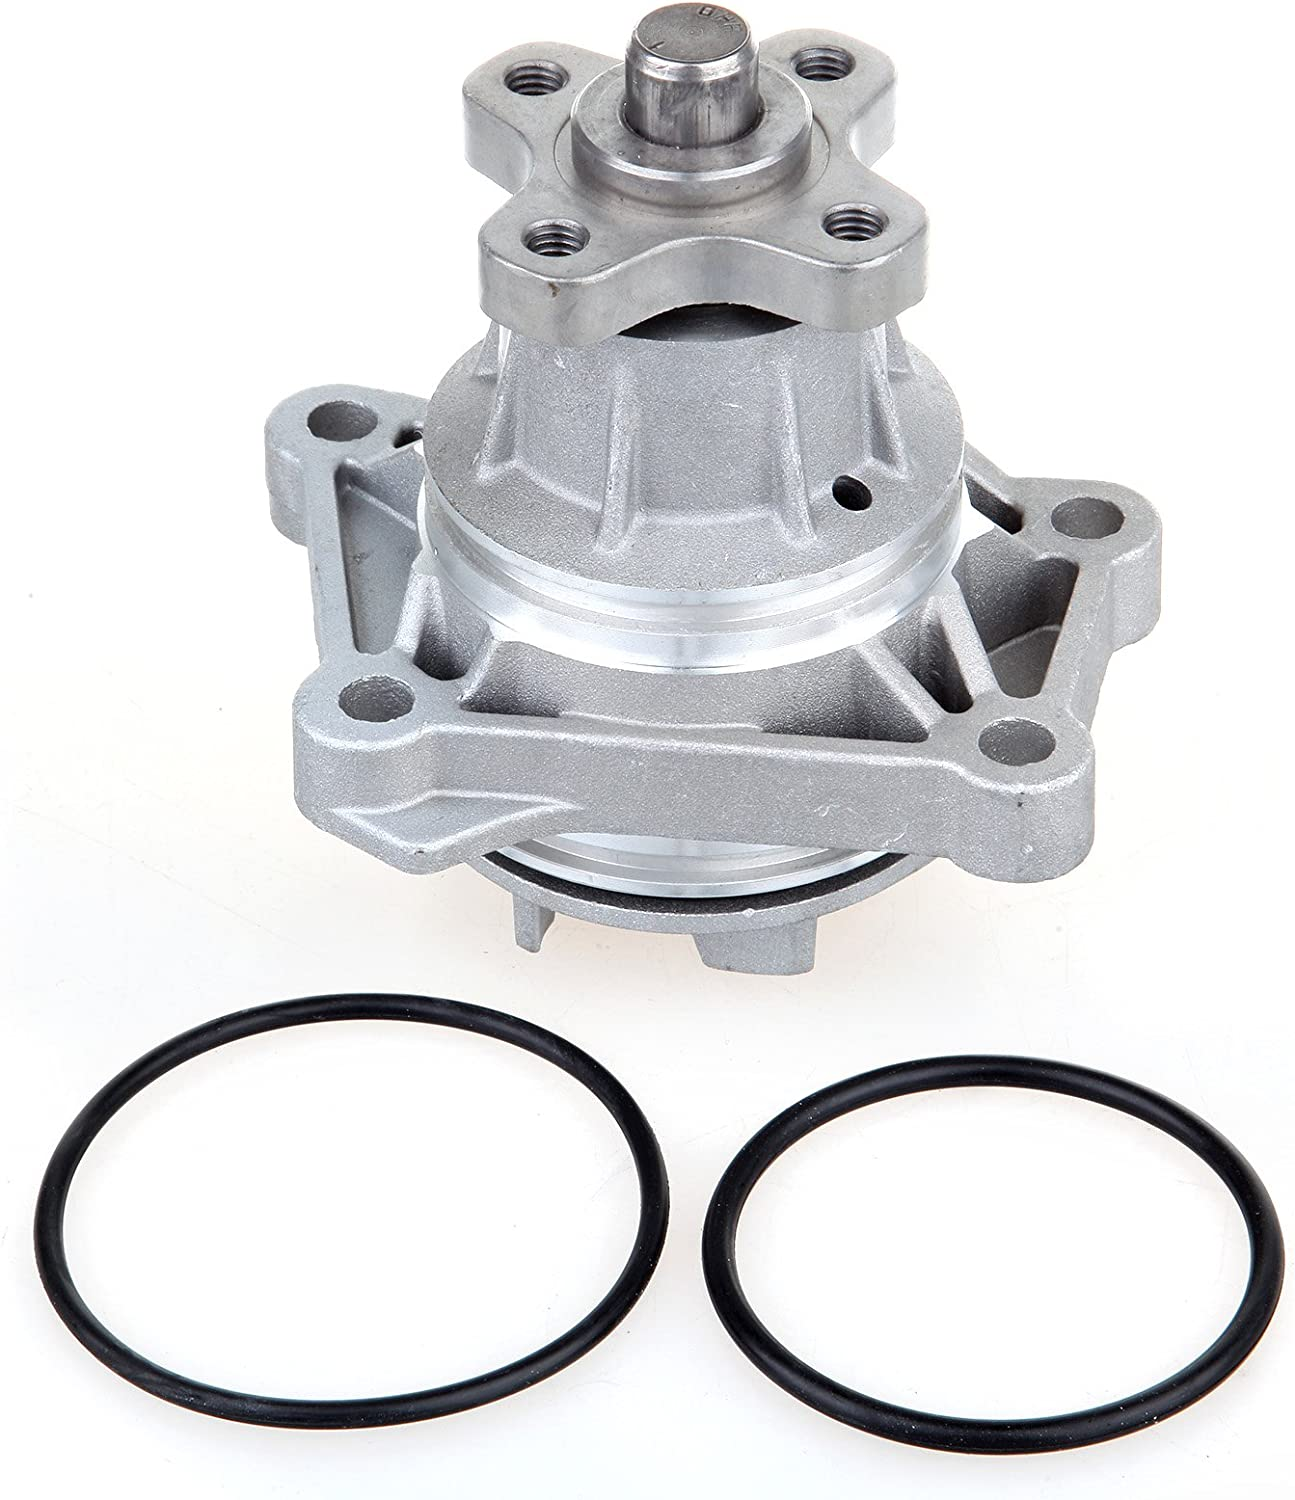 SCITOO Water Pump with Large Online limited product discharge sale Gasket fits AW9385 2004 2001 for WP-9325